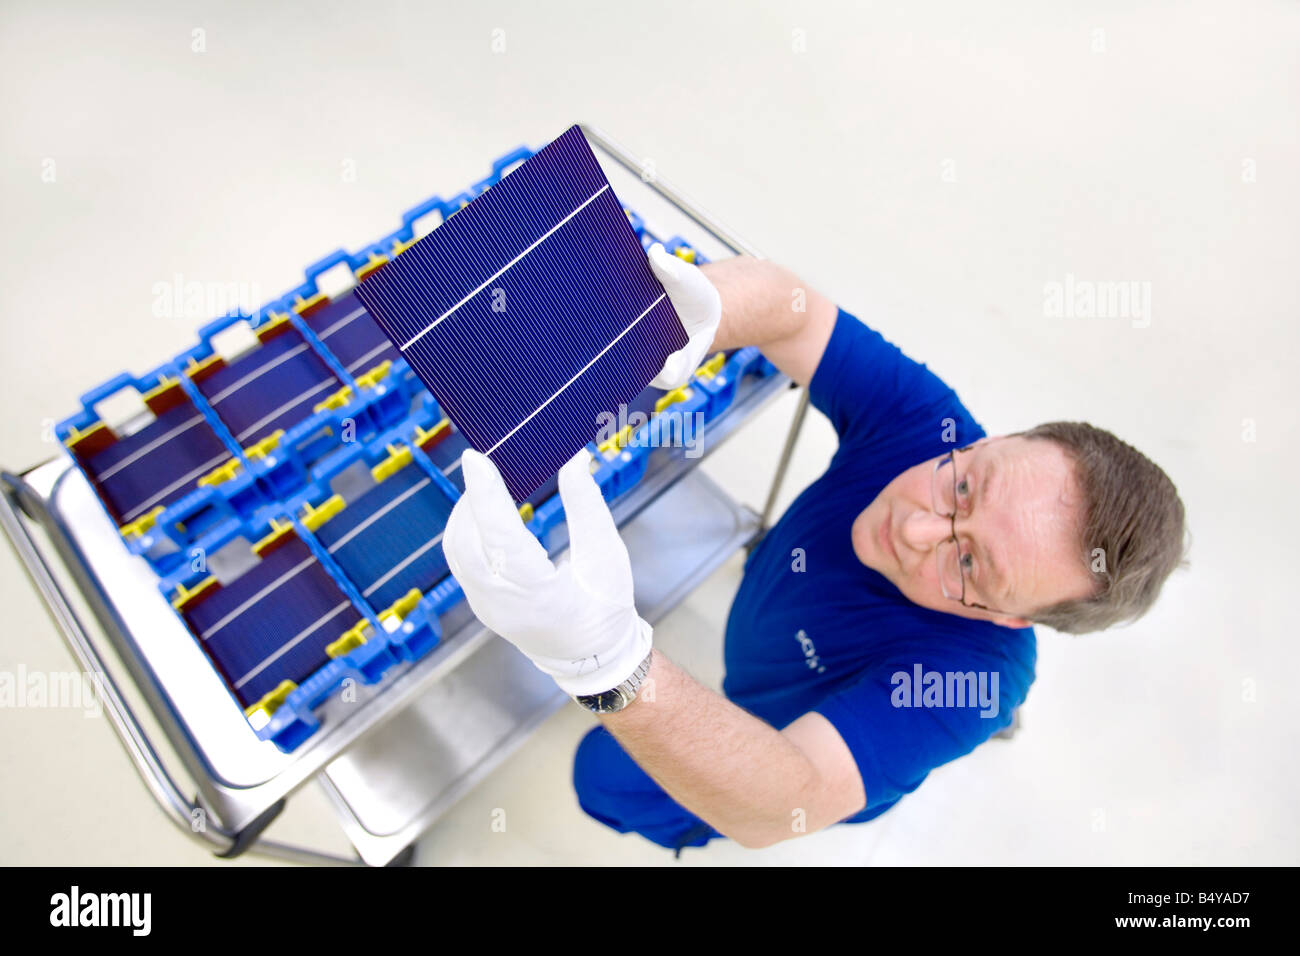 SCHOTT Solar AG production of solar cells Worker with solar cells ready for shipping - Stock Image